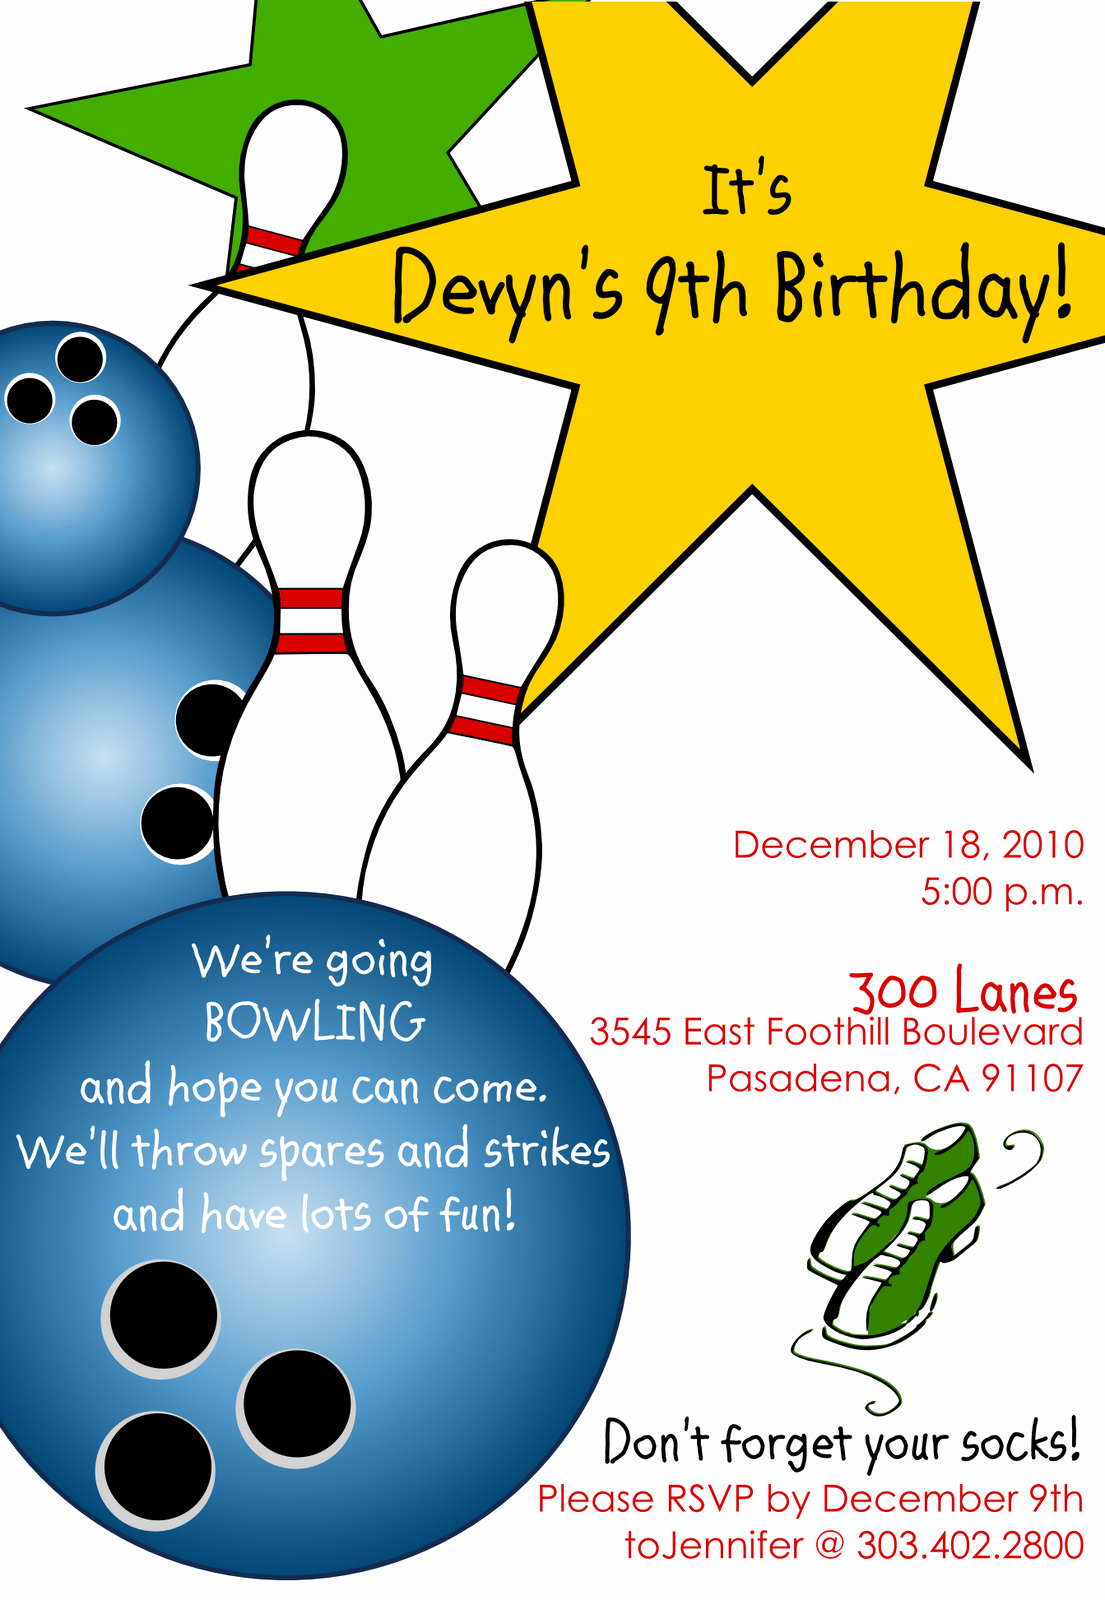 Free Bowling Invitation Template Luxury 40th Birthday Ideas Birthday Invitation Templates Bowling